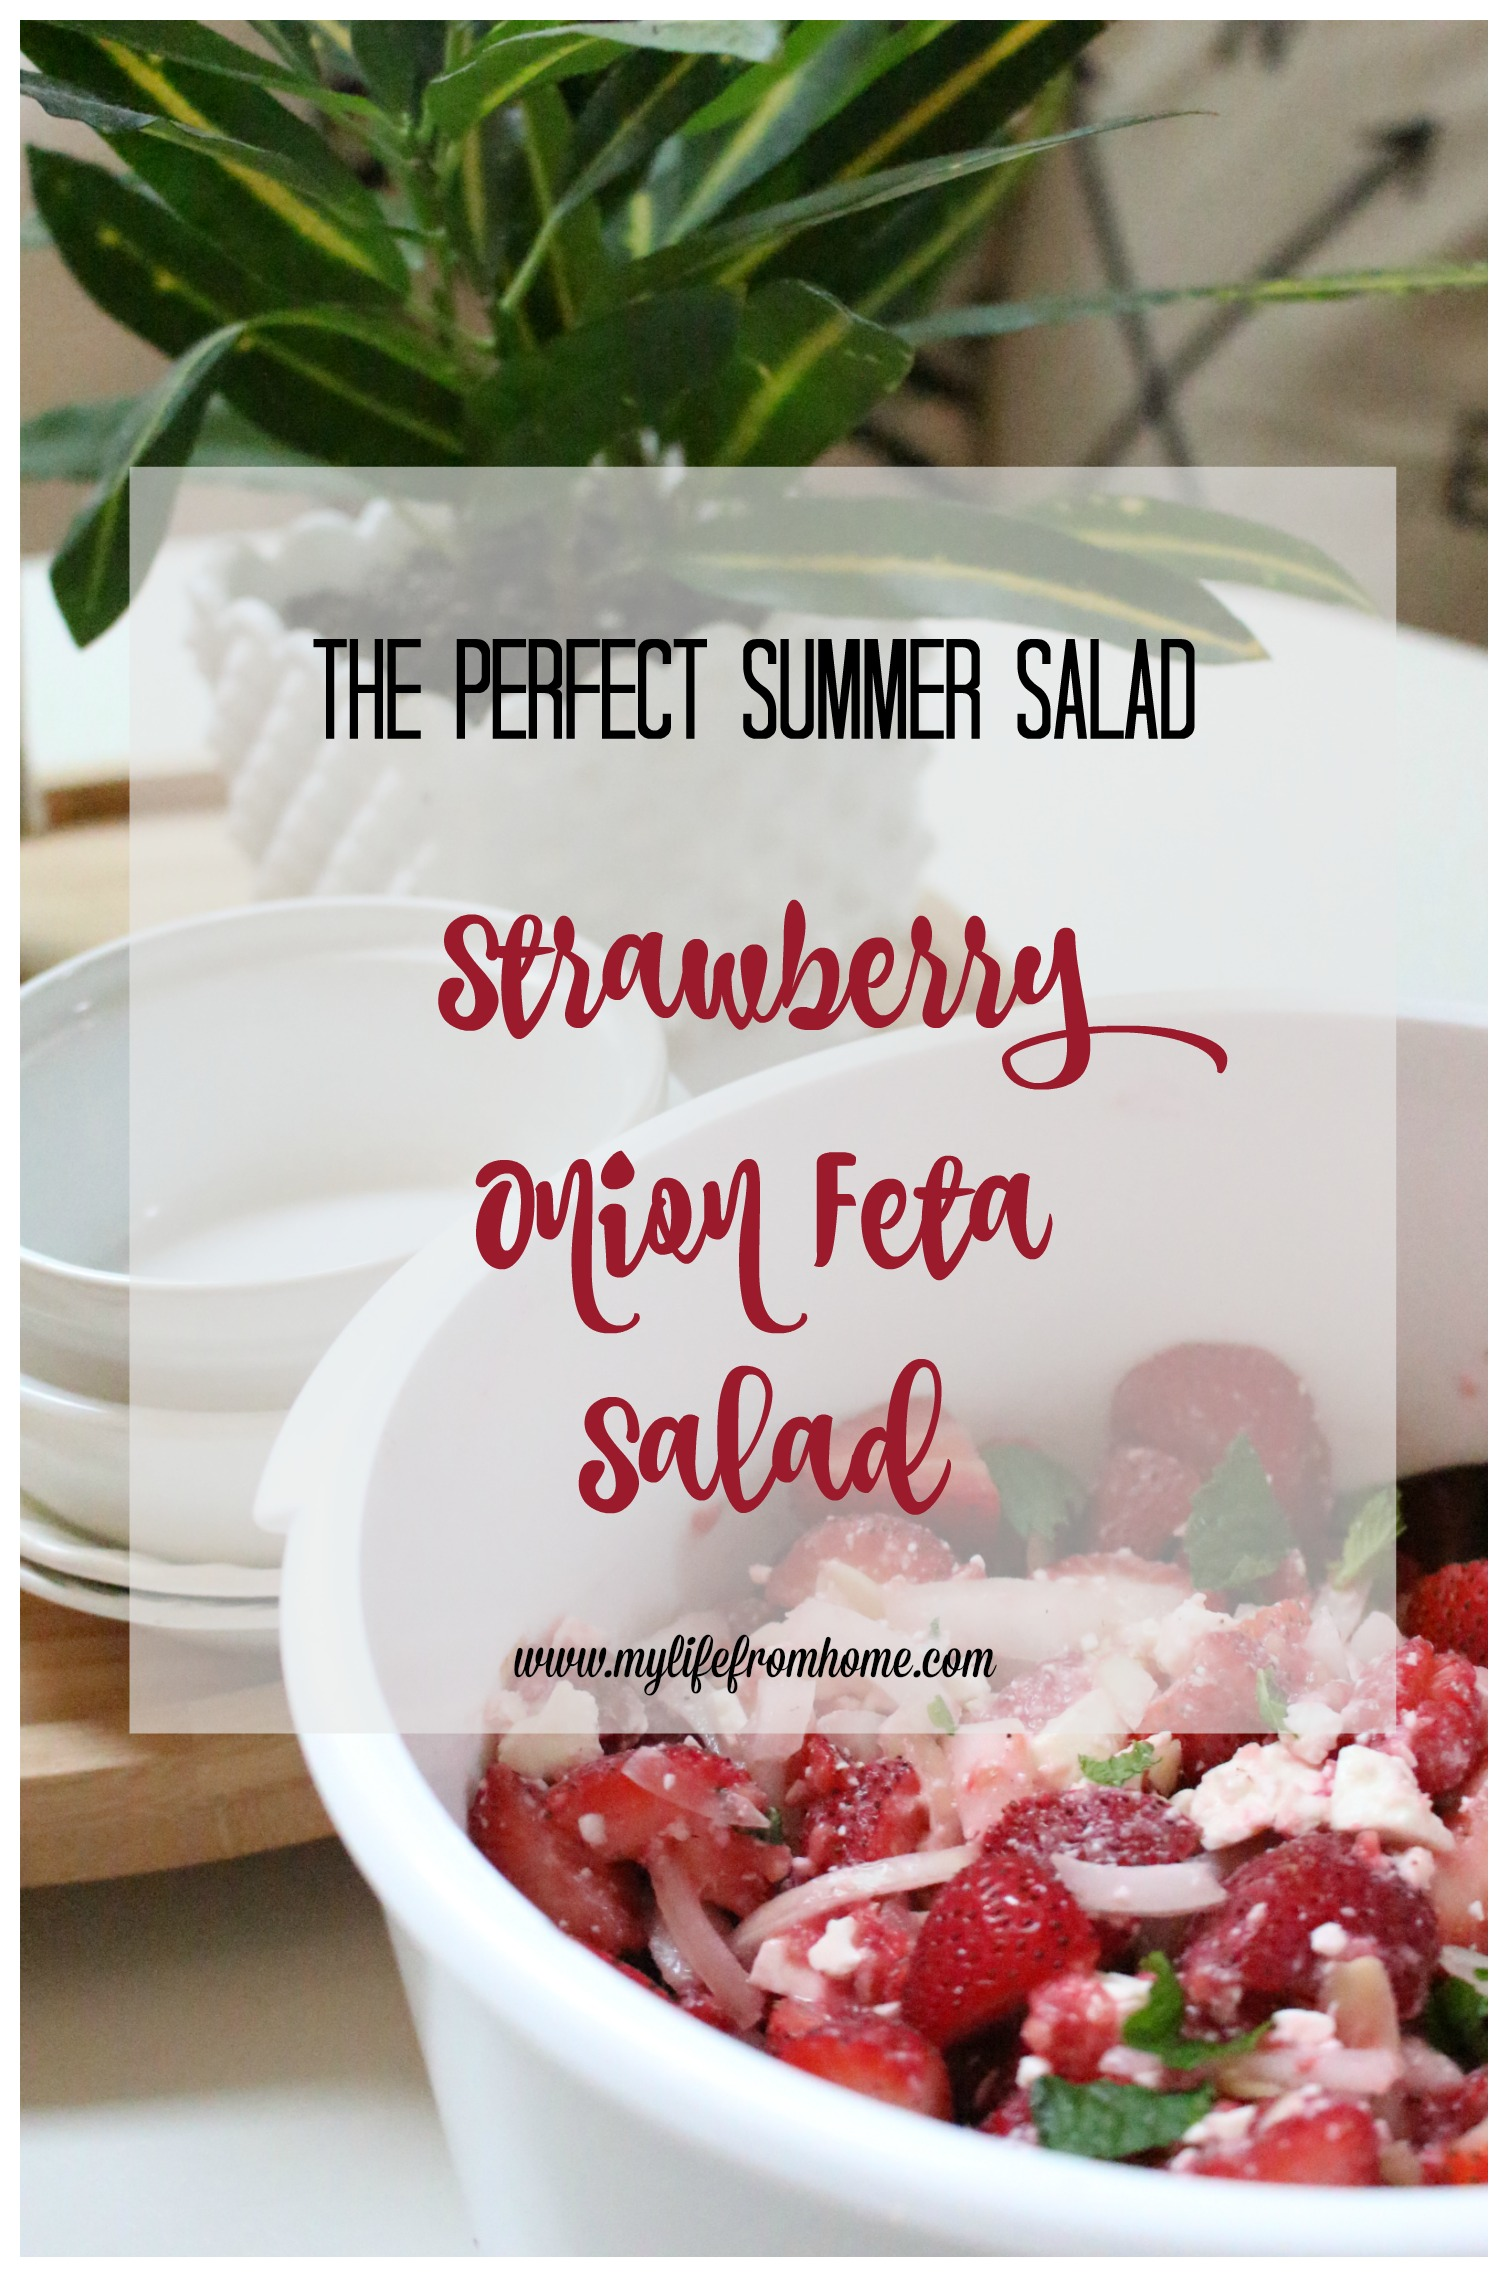 Strawberry Onion Feta Salad by www.mylifefromhome.com